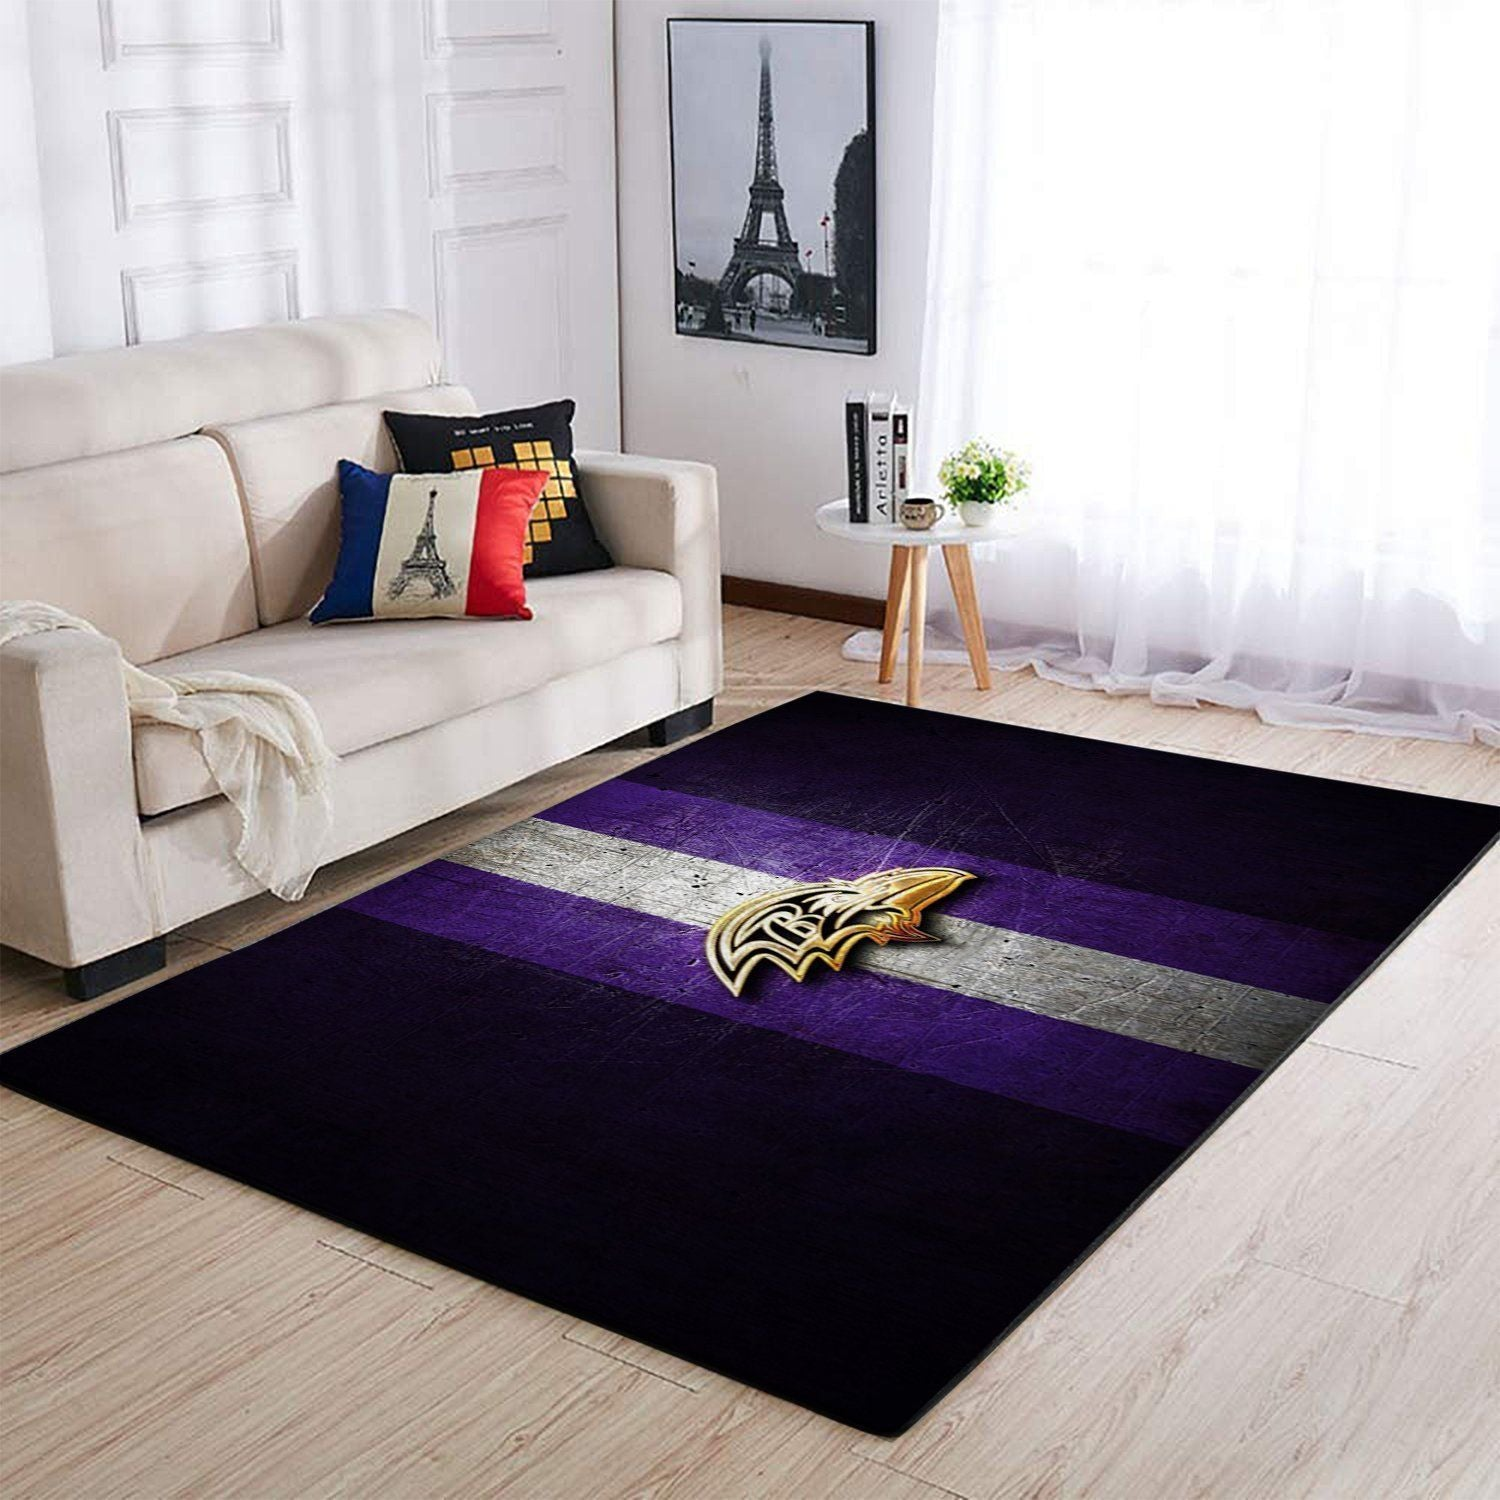 Baltimore Ravens Area Rug, NFL Football Team Logo Carpet, Living Room Rugs Floor Decor 1910074